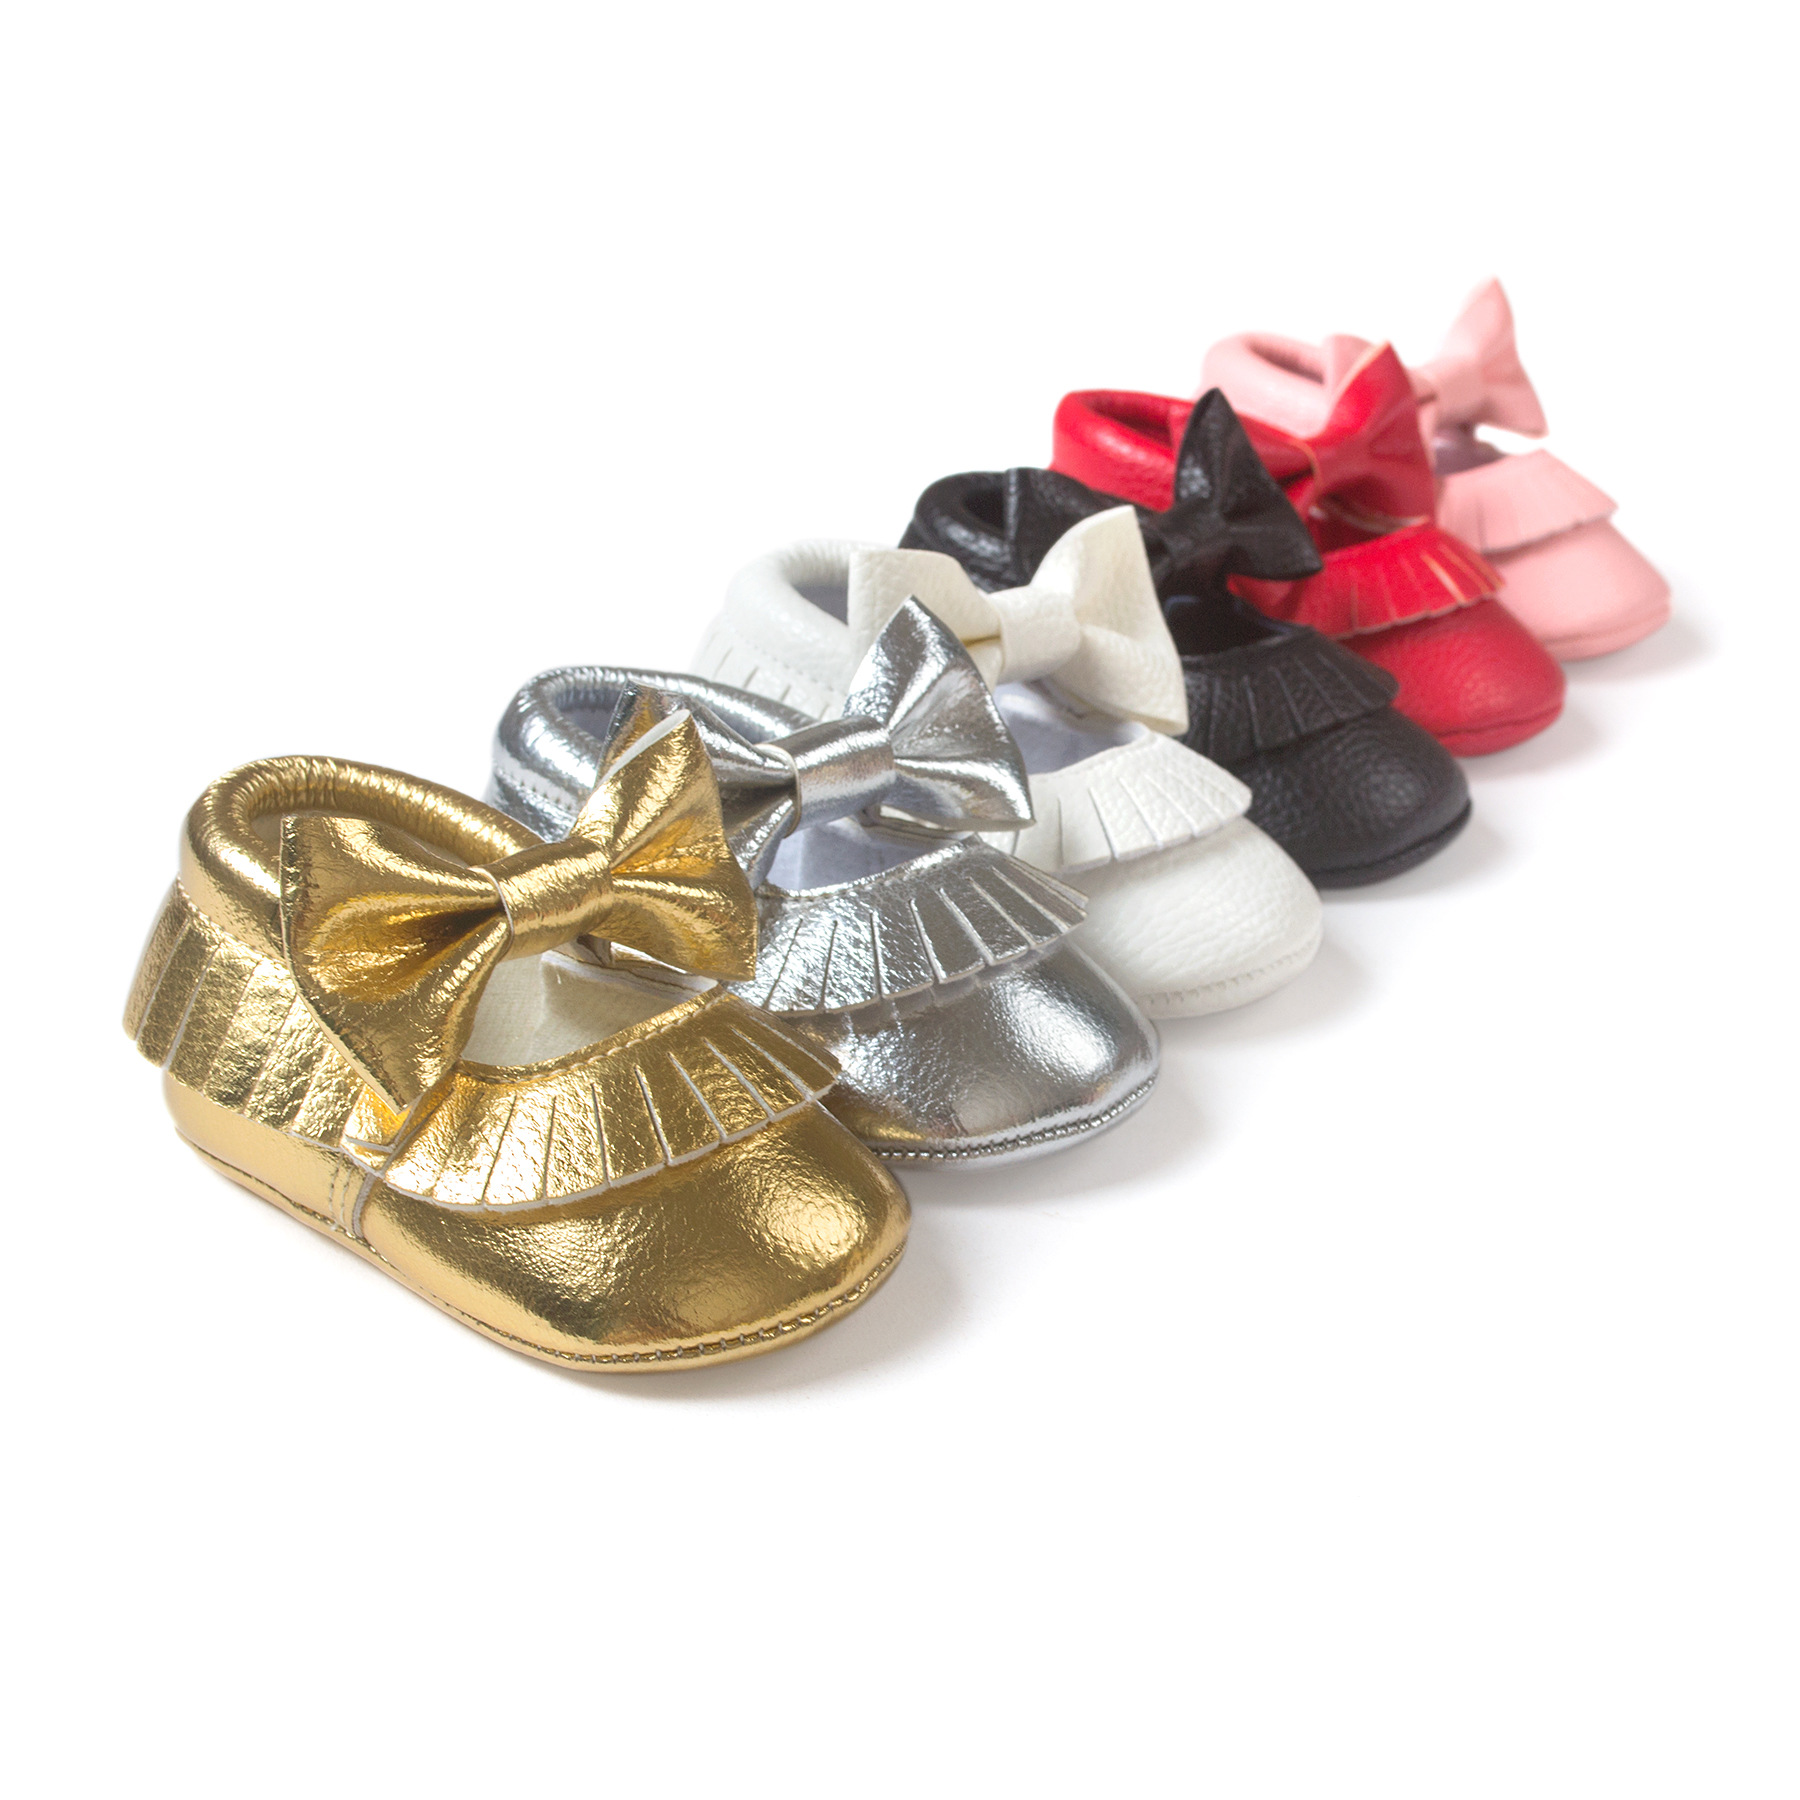 Hollow Baby Shoes Tassel Bow Infant Moccasins Soft Moccs Kids PU Leather Baby Girls Soft Sole Bebe Toddler Shoes